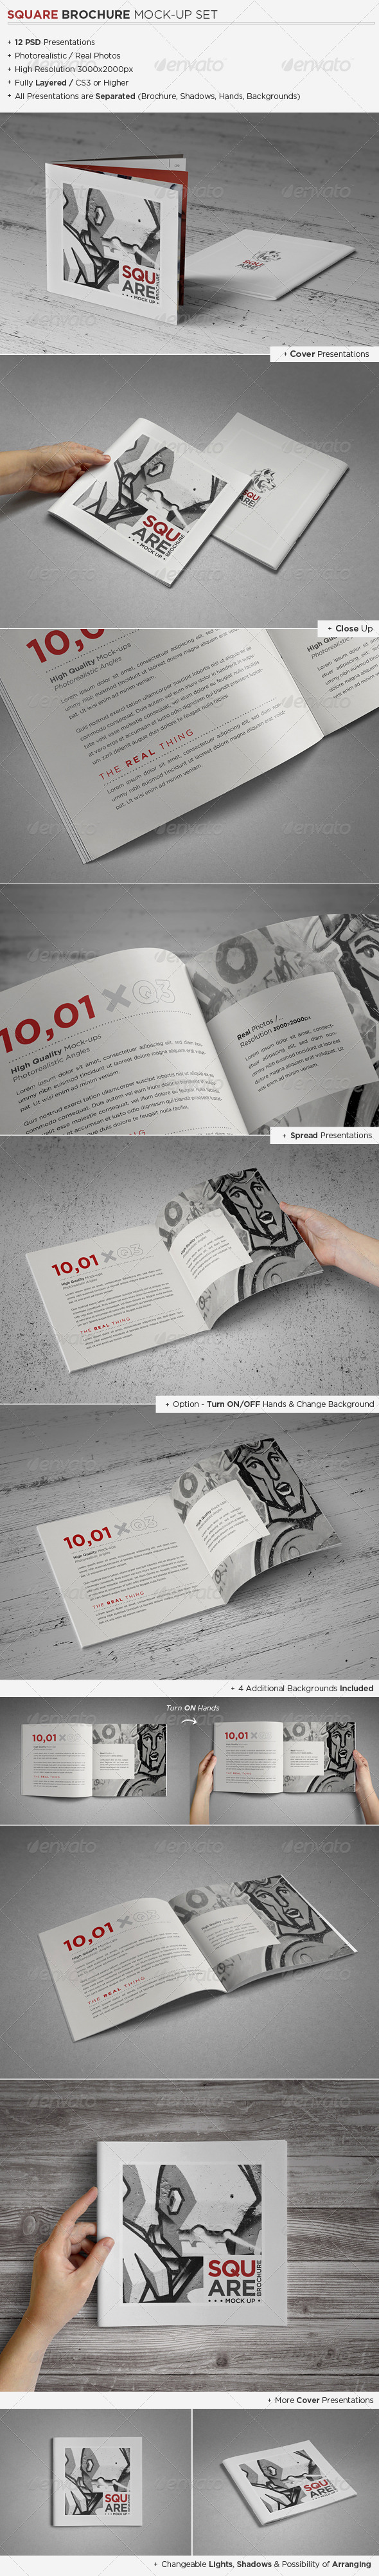 GraphicRiver Square Brochure Catalog Mock-Up Set 4476060